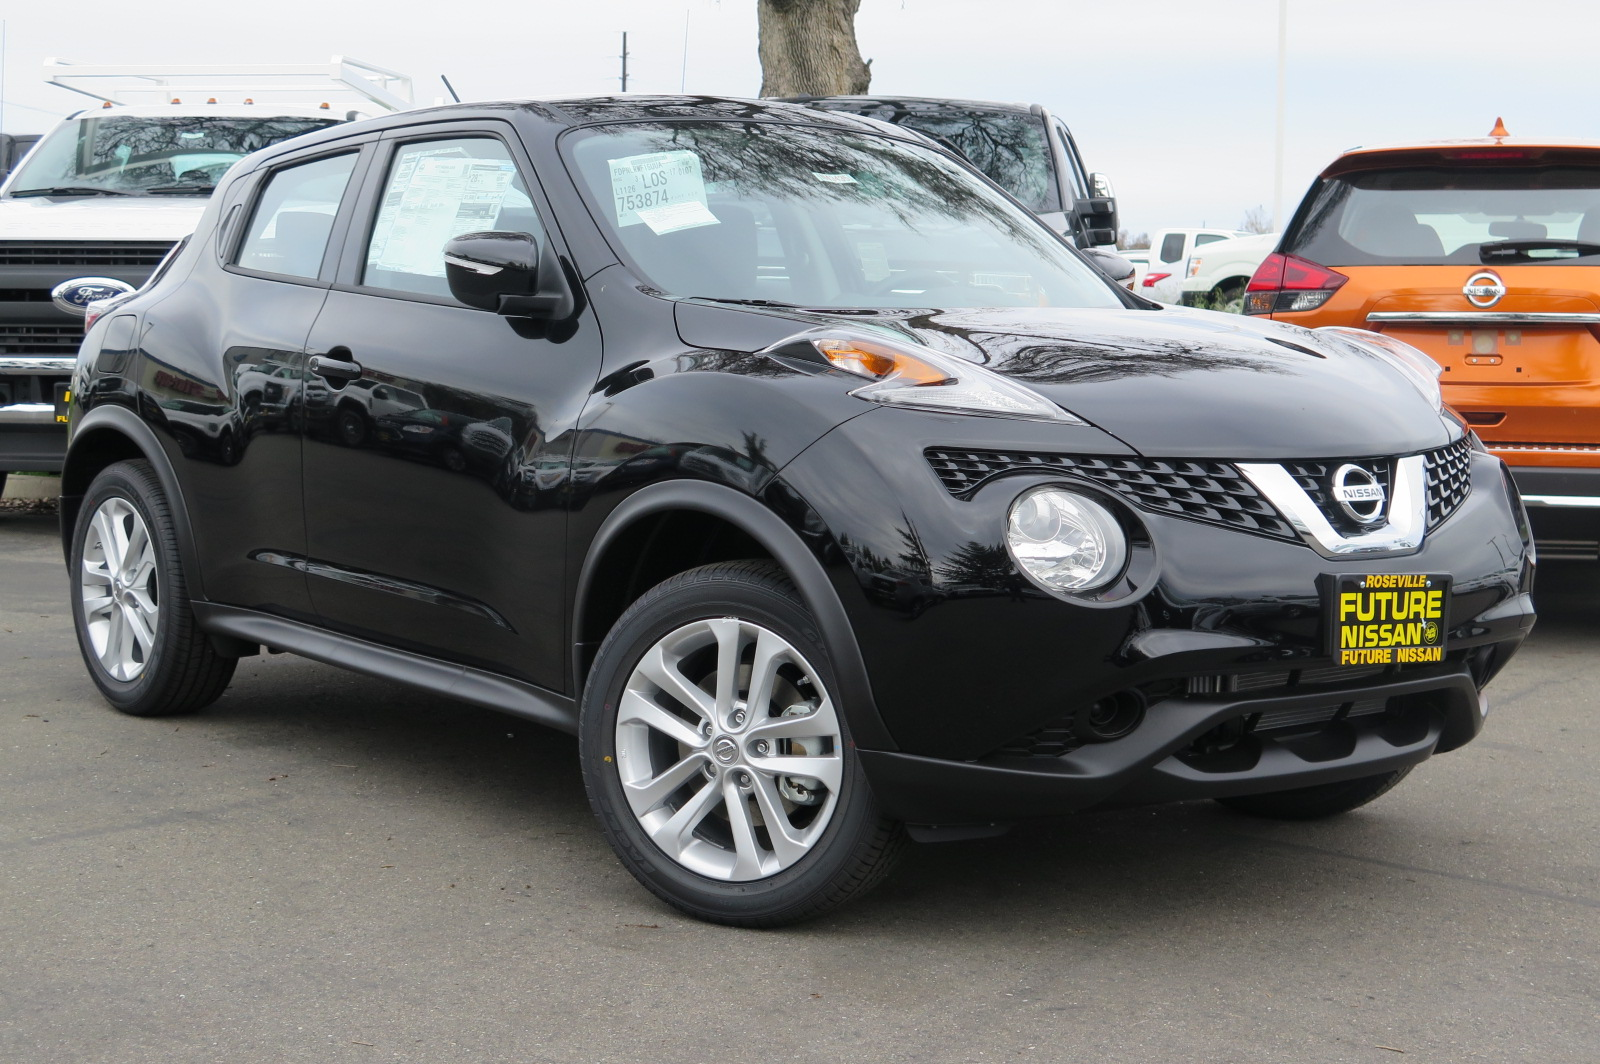 Future Ford Of Sacramento >> Cars For Sale At Future Nissan Of Roseville Roseville | Autos Post